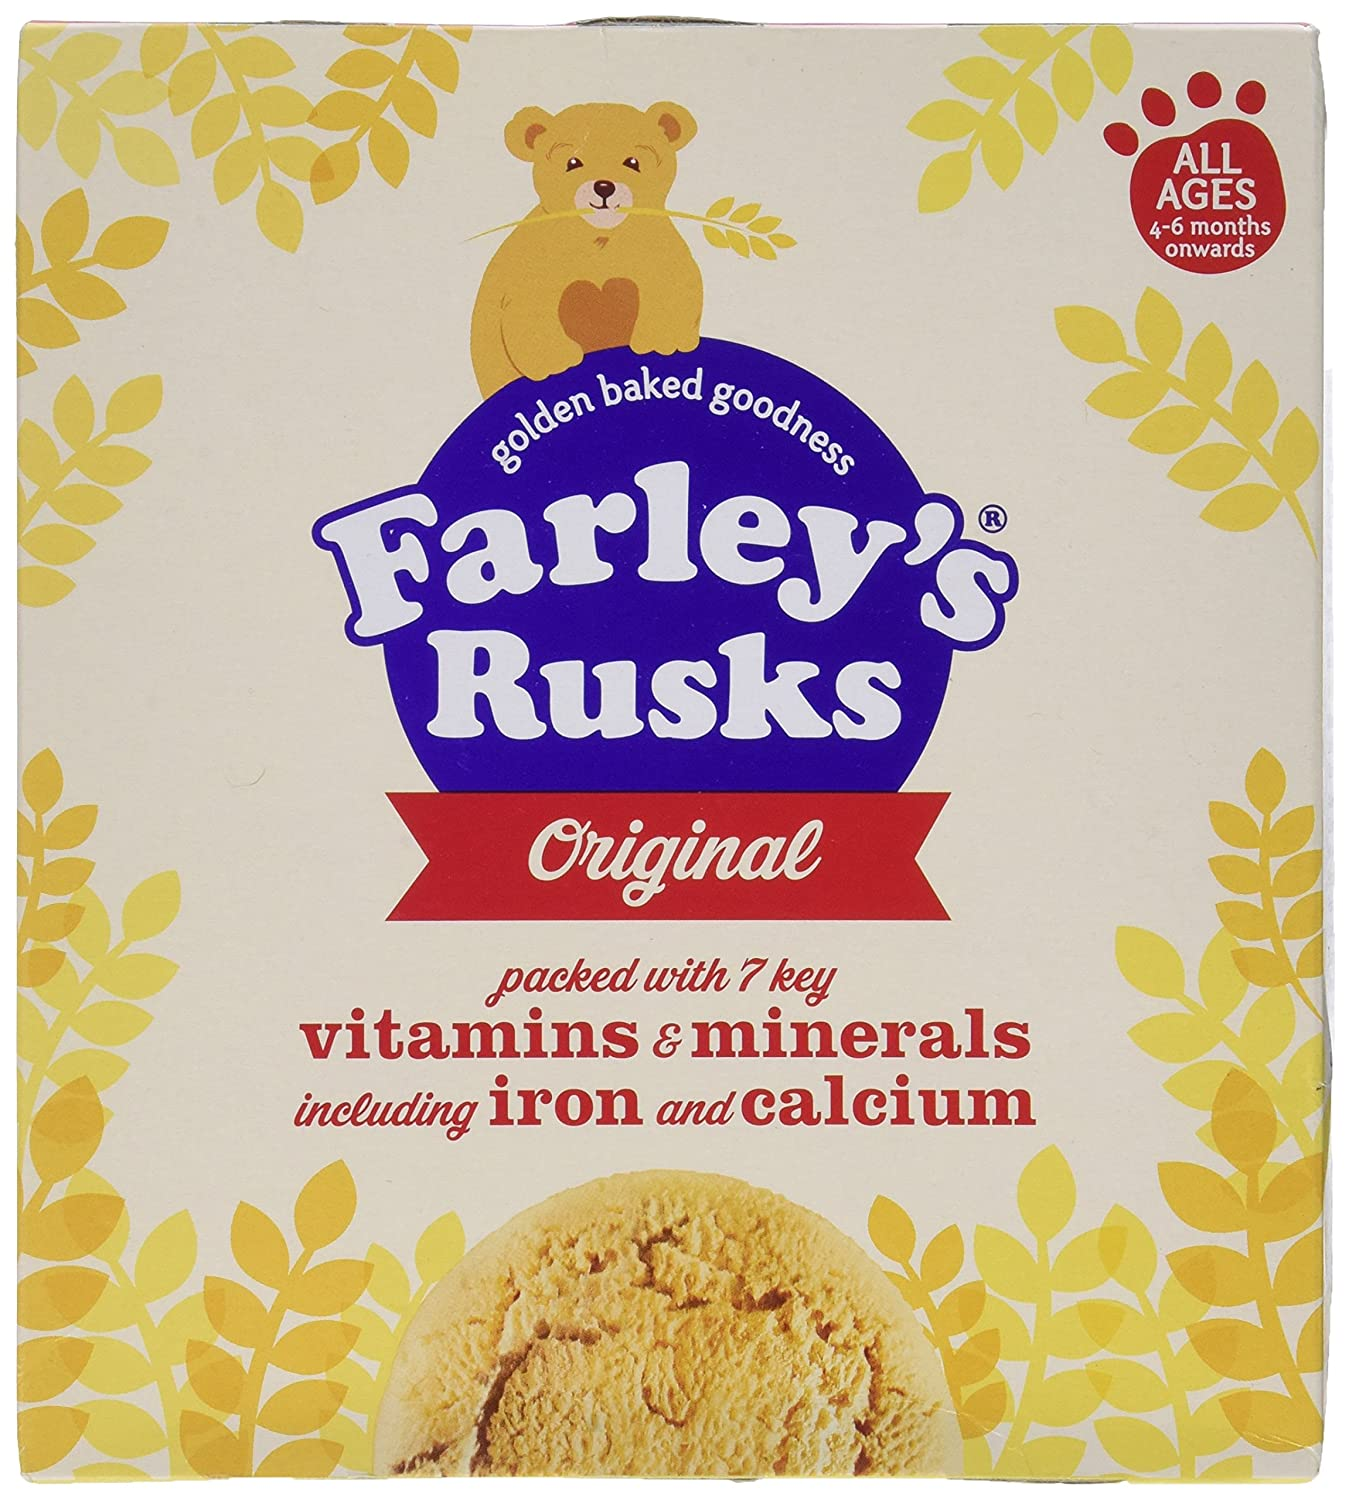 Heinz Farley's Rusks Original 4mth+ 300g Max 45% OFF pack - 18 Discount mail order per